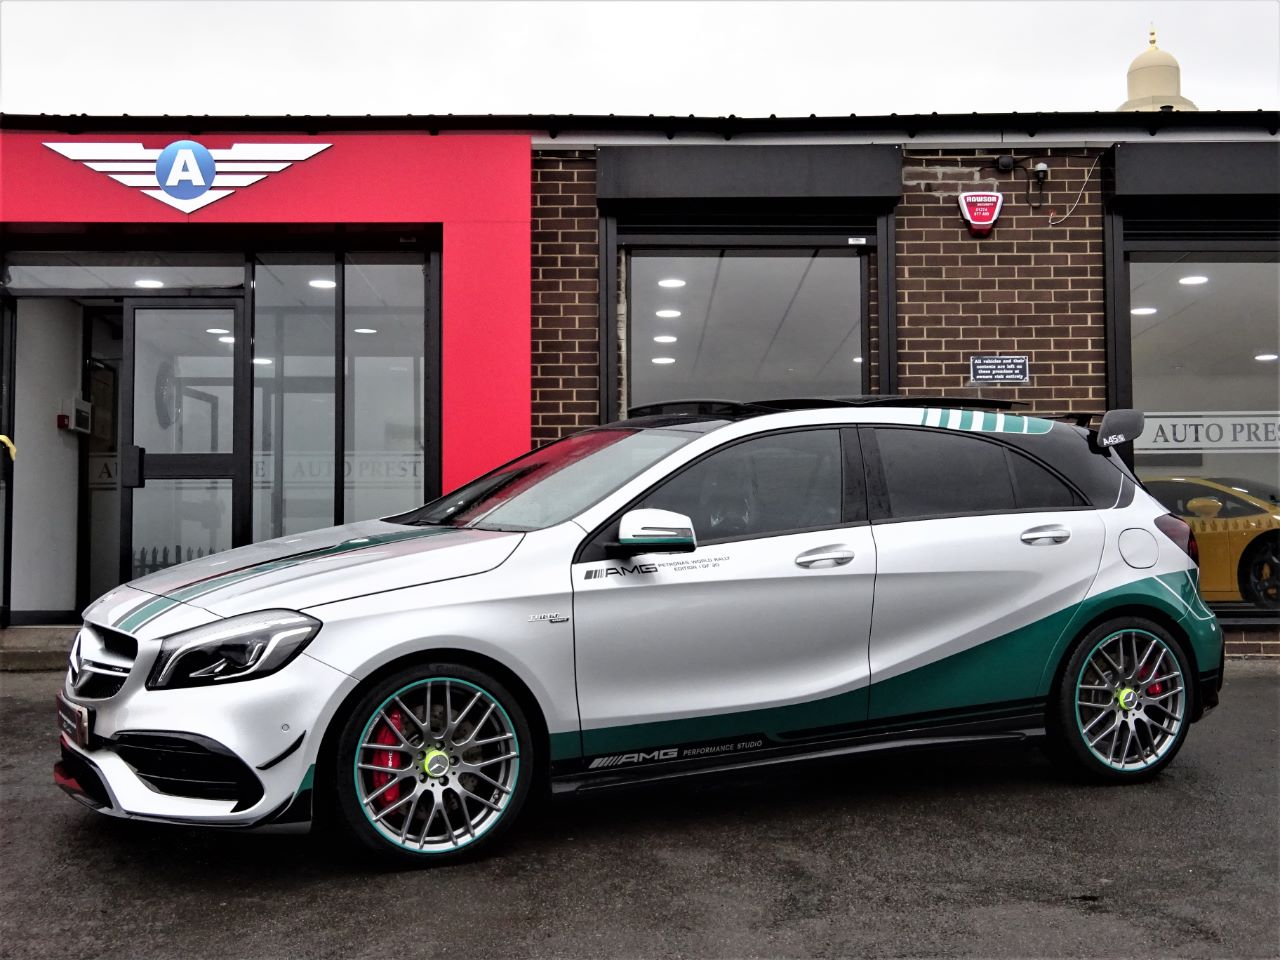 used mercedes benz amg a45 4matic petronas world champion edn 5dr 1 of only 30 lewis hamilton. Black Bedroom Furniture Sets. Home Design Ideas